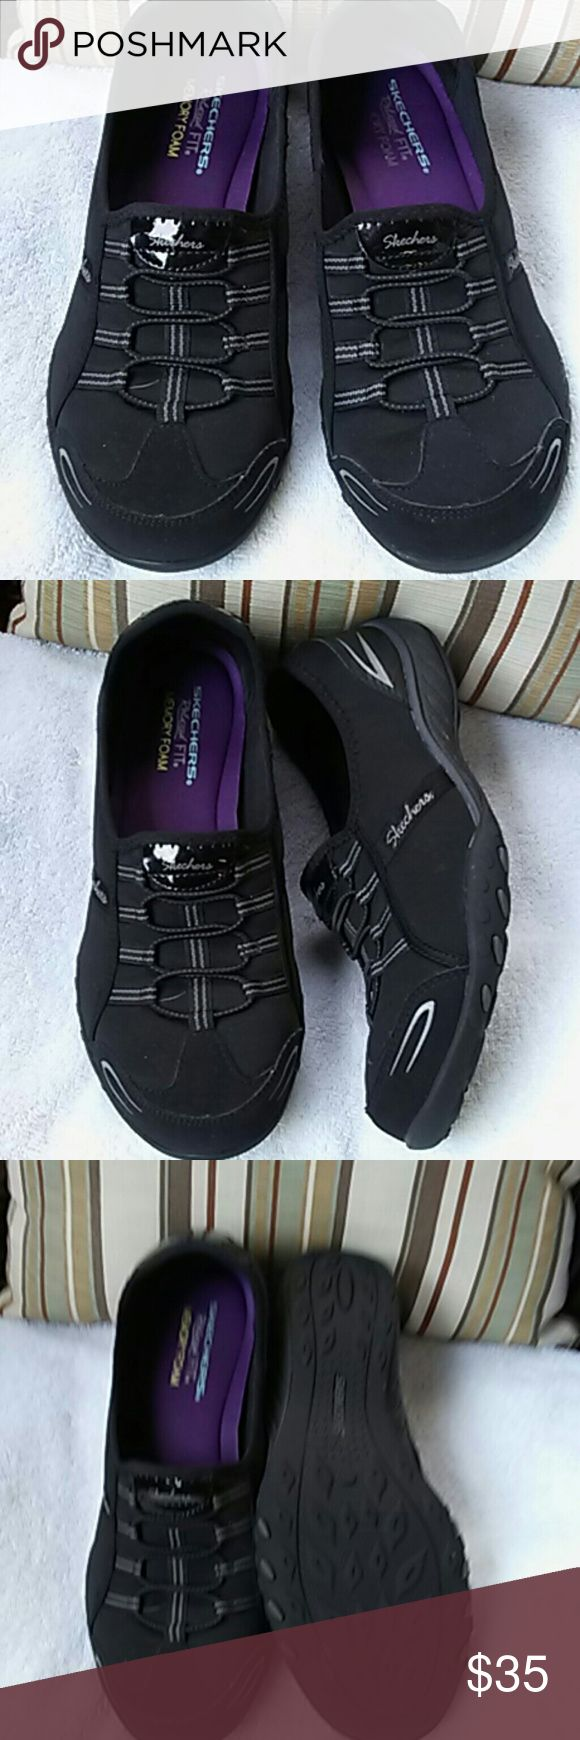 Black Skechers like new Just tried,not wear they didn't fit me. But very clean and comfortable. Skechers  Shoes Sneakers